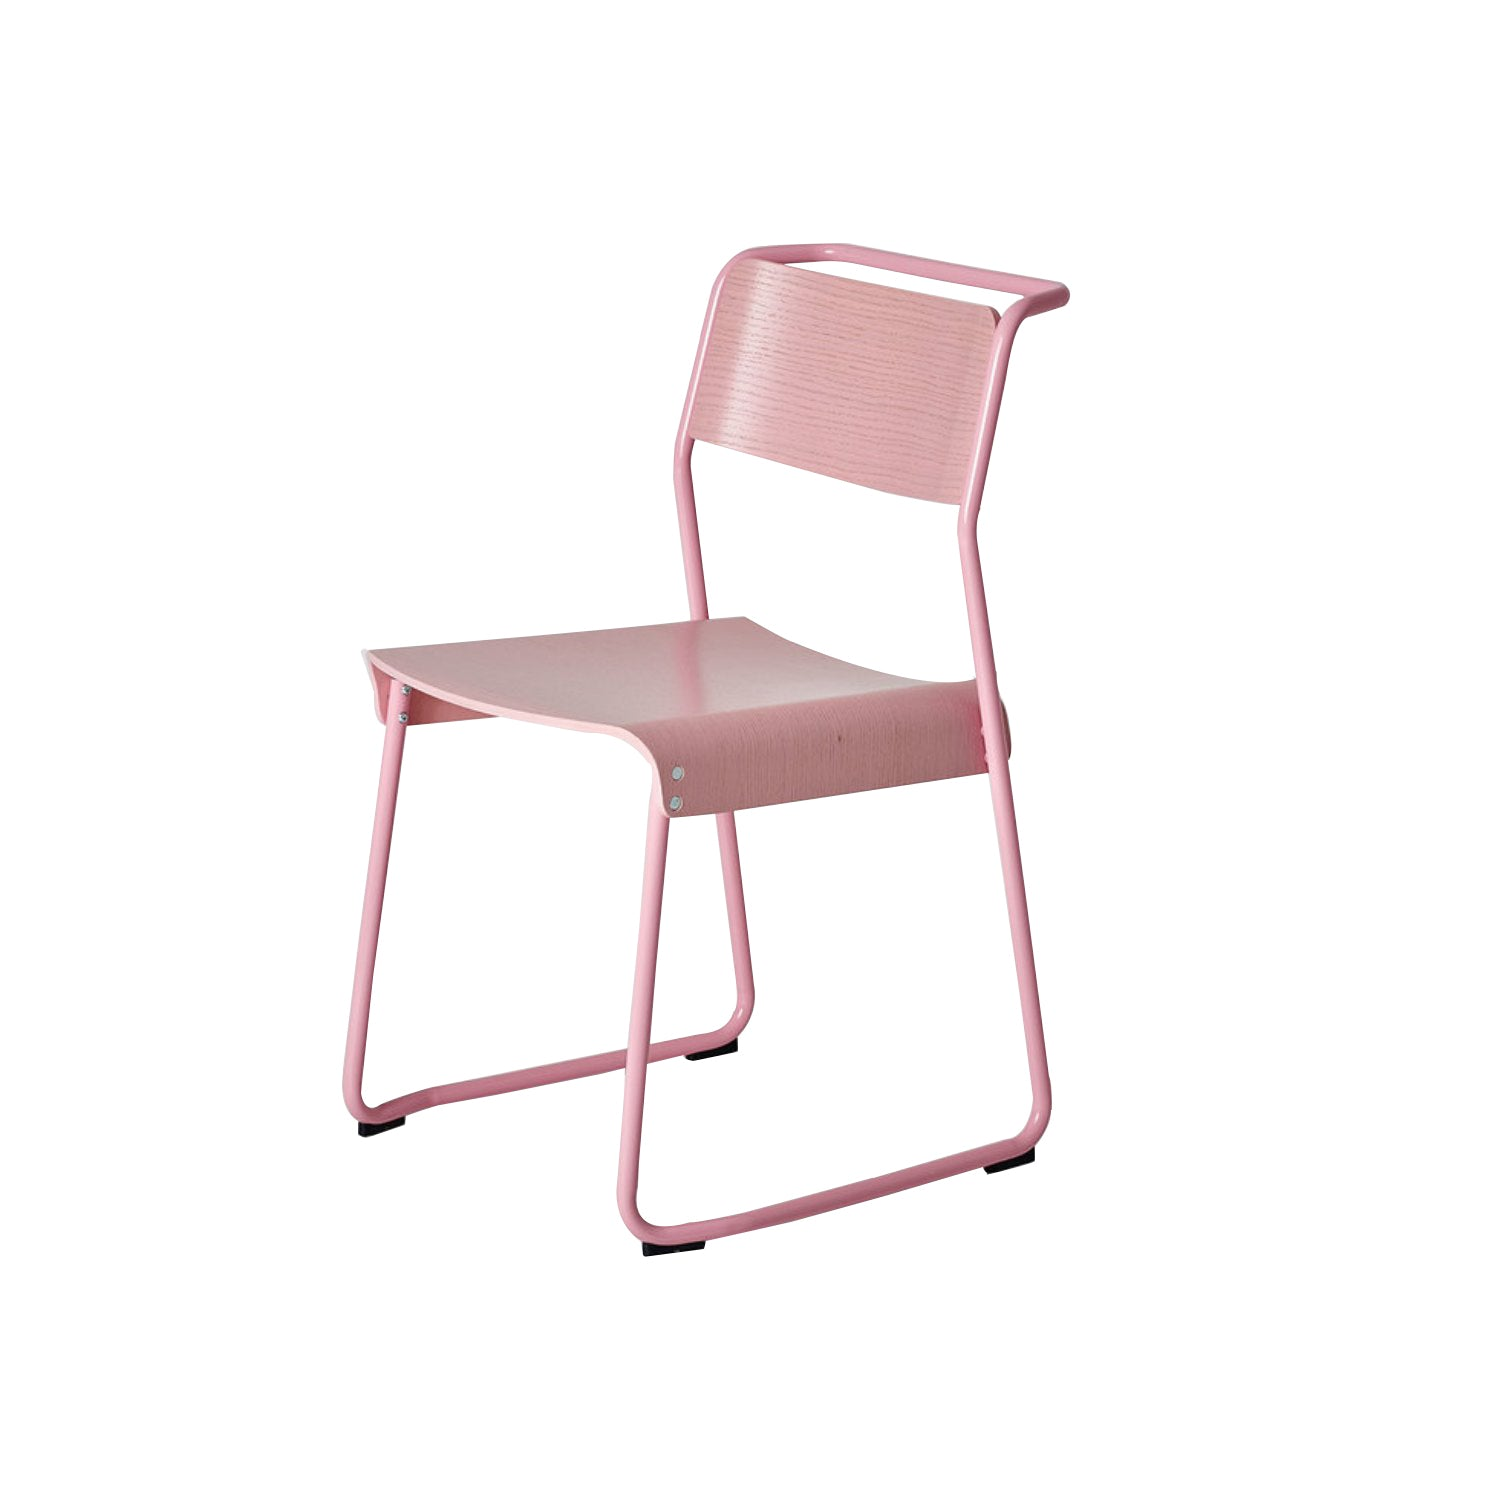 Canteen Utility Chair: Solid Colors + Light Pink